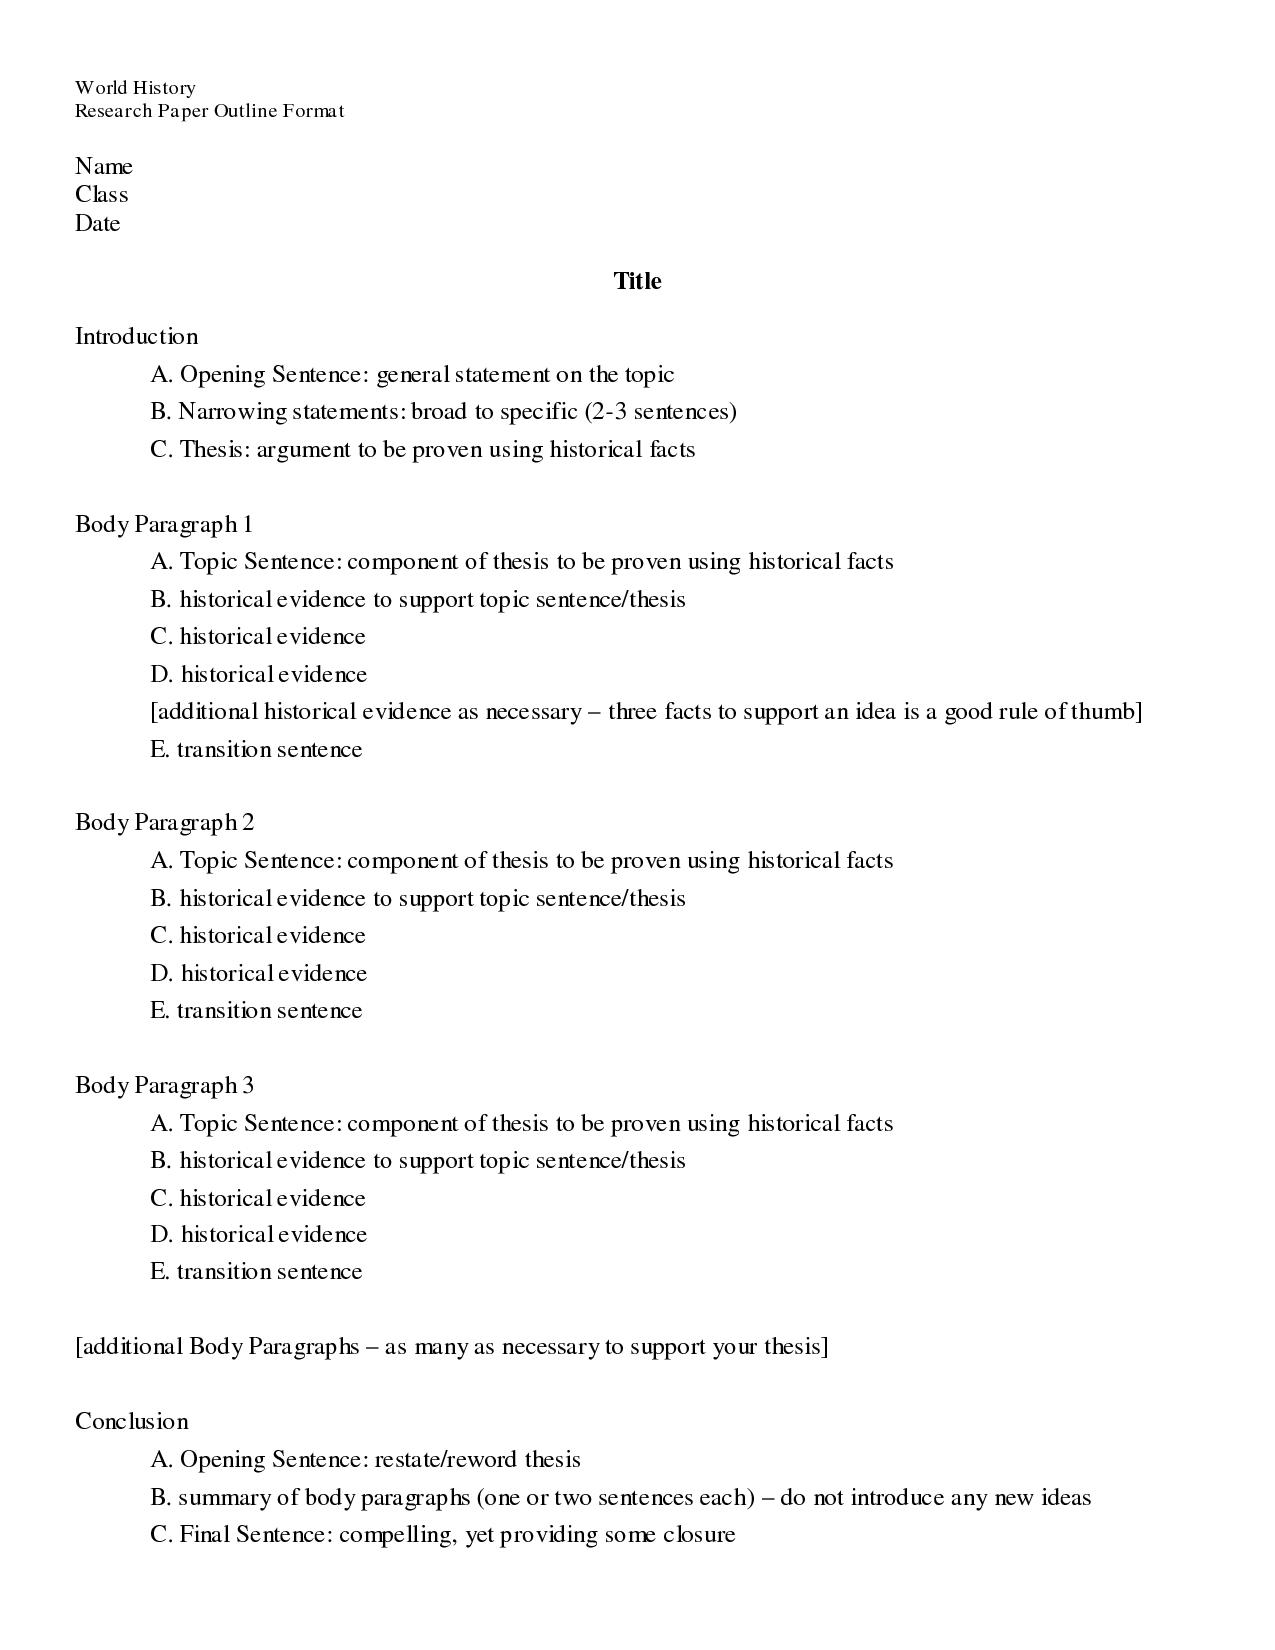 012 Outline Image1 Sample Outlines For Researchs Awful Research Papers Writing